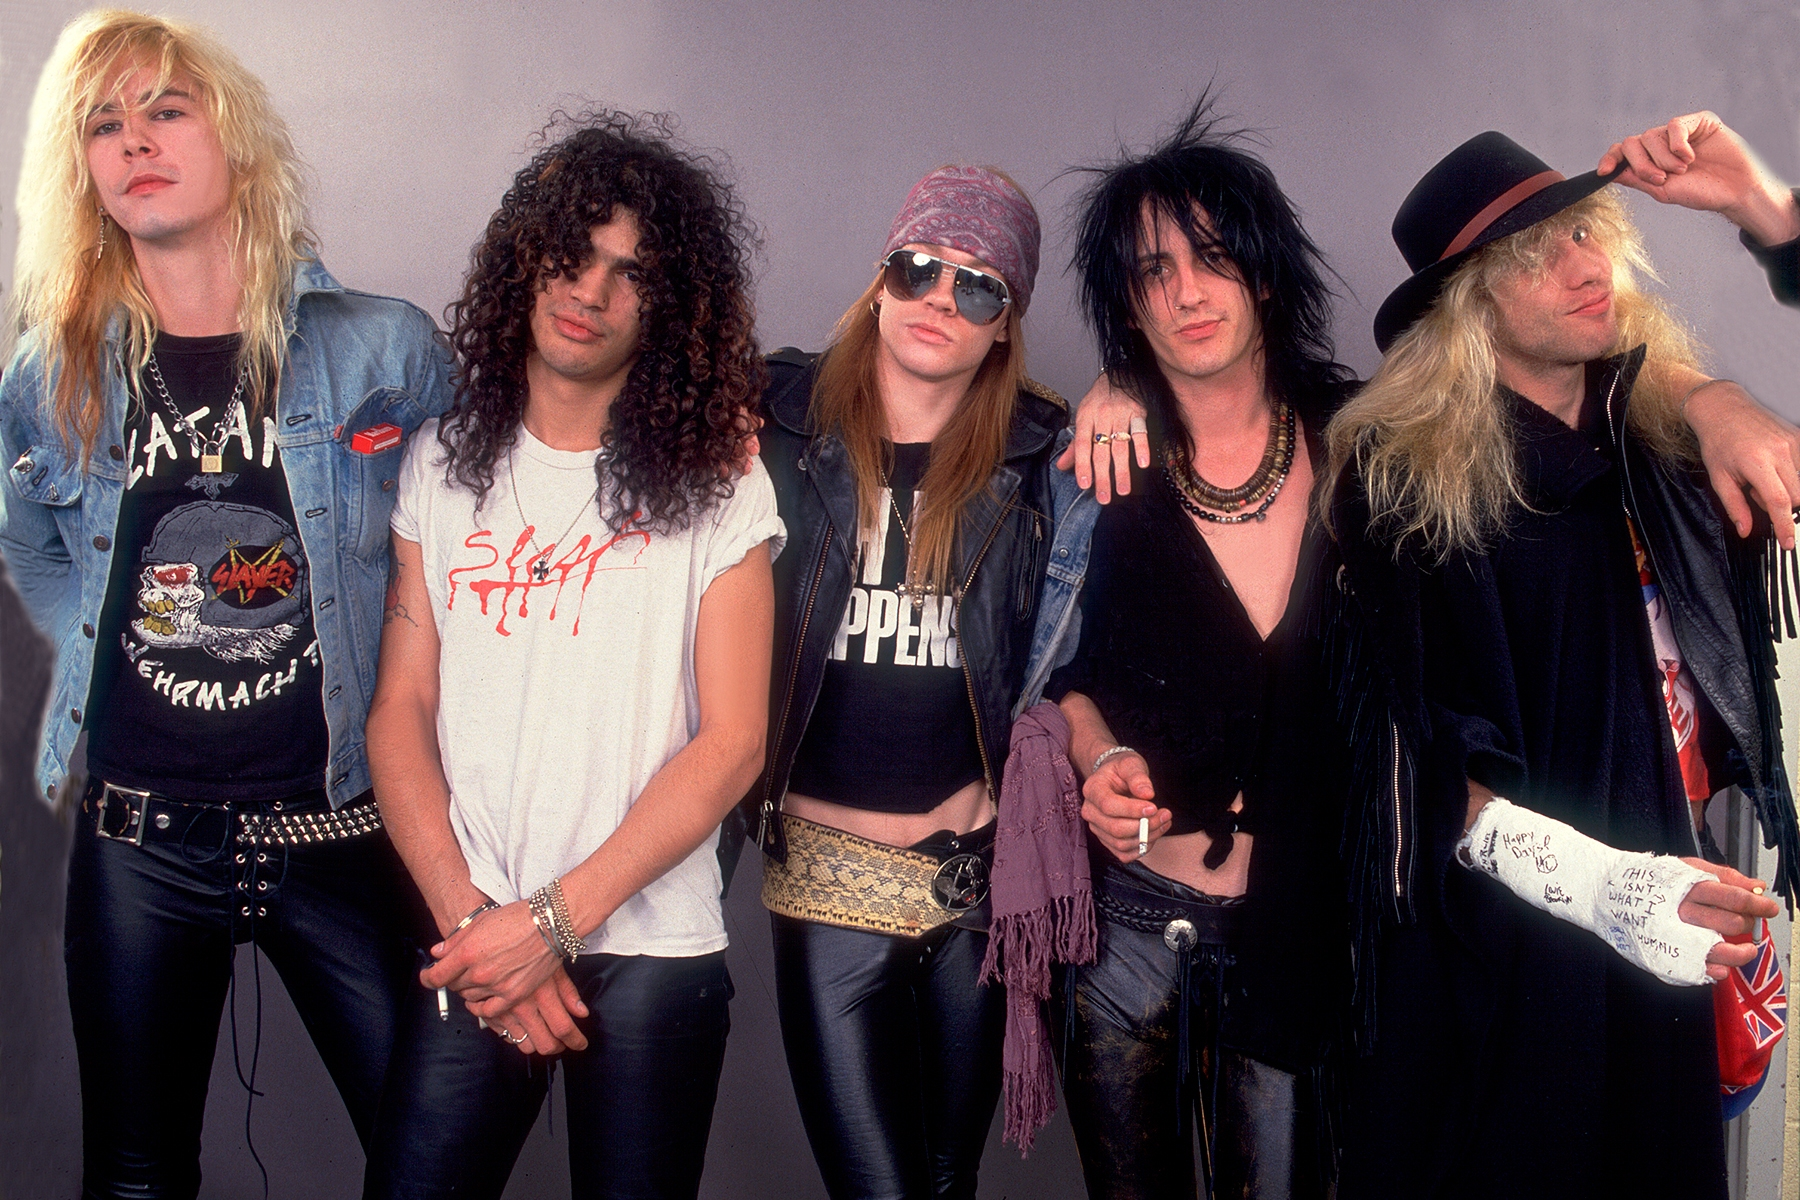 Guns And Roses (Duff McCagan, Slash, Axl Rose, Izzy Stradlin, Steven Adler) at the UIC Pavillion  in Chicago, Illinois,  August 21, 1987 .  (Photo by Paul Natkin/Getty Images)